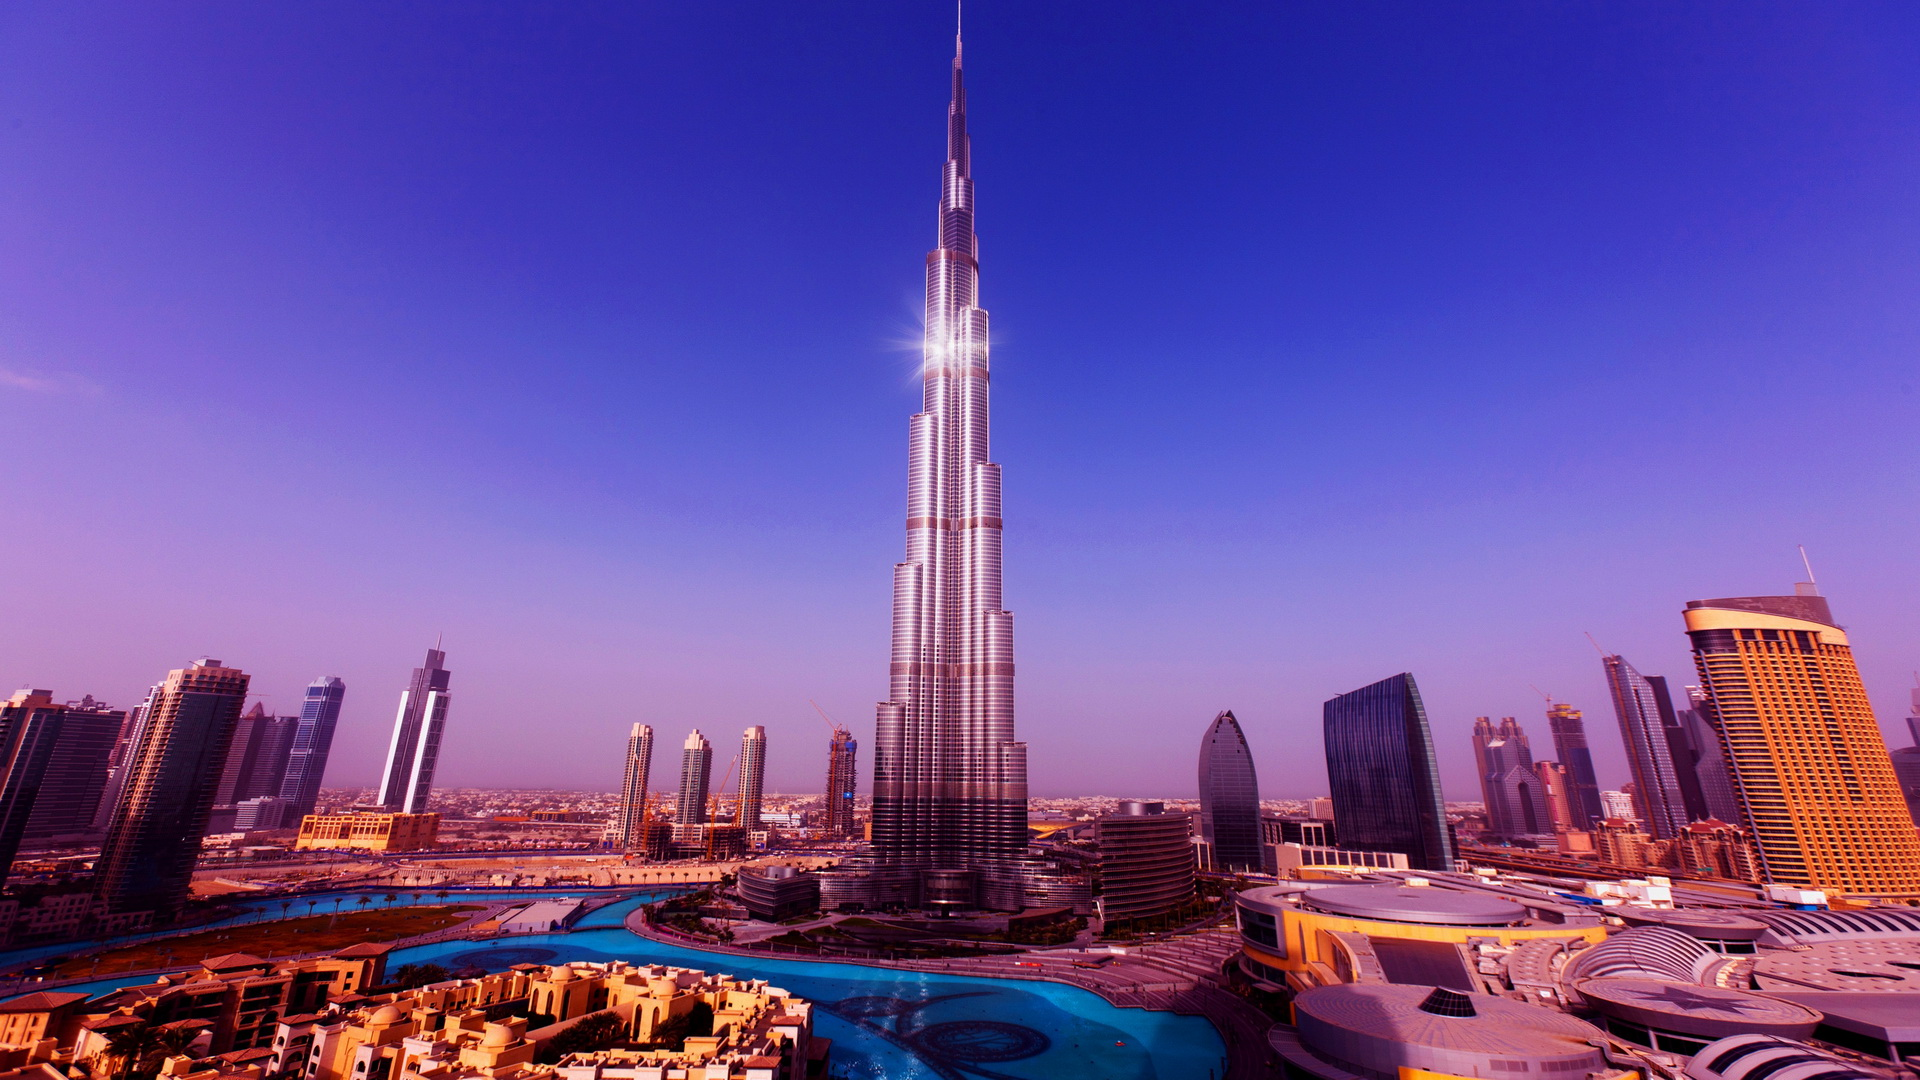 Dubai city wallpapers best wallpapers dubai city wallpapers voltagebd Image collections